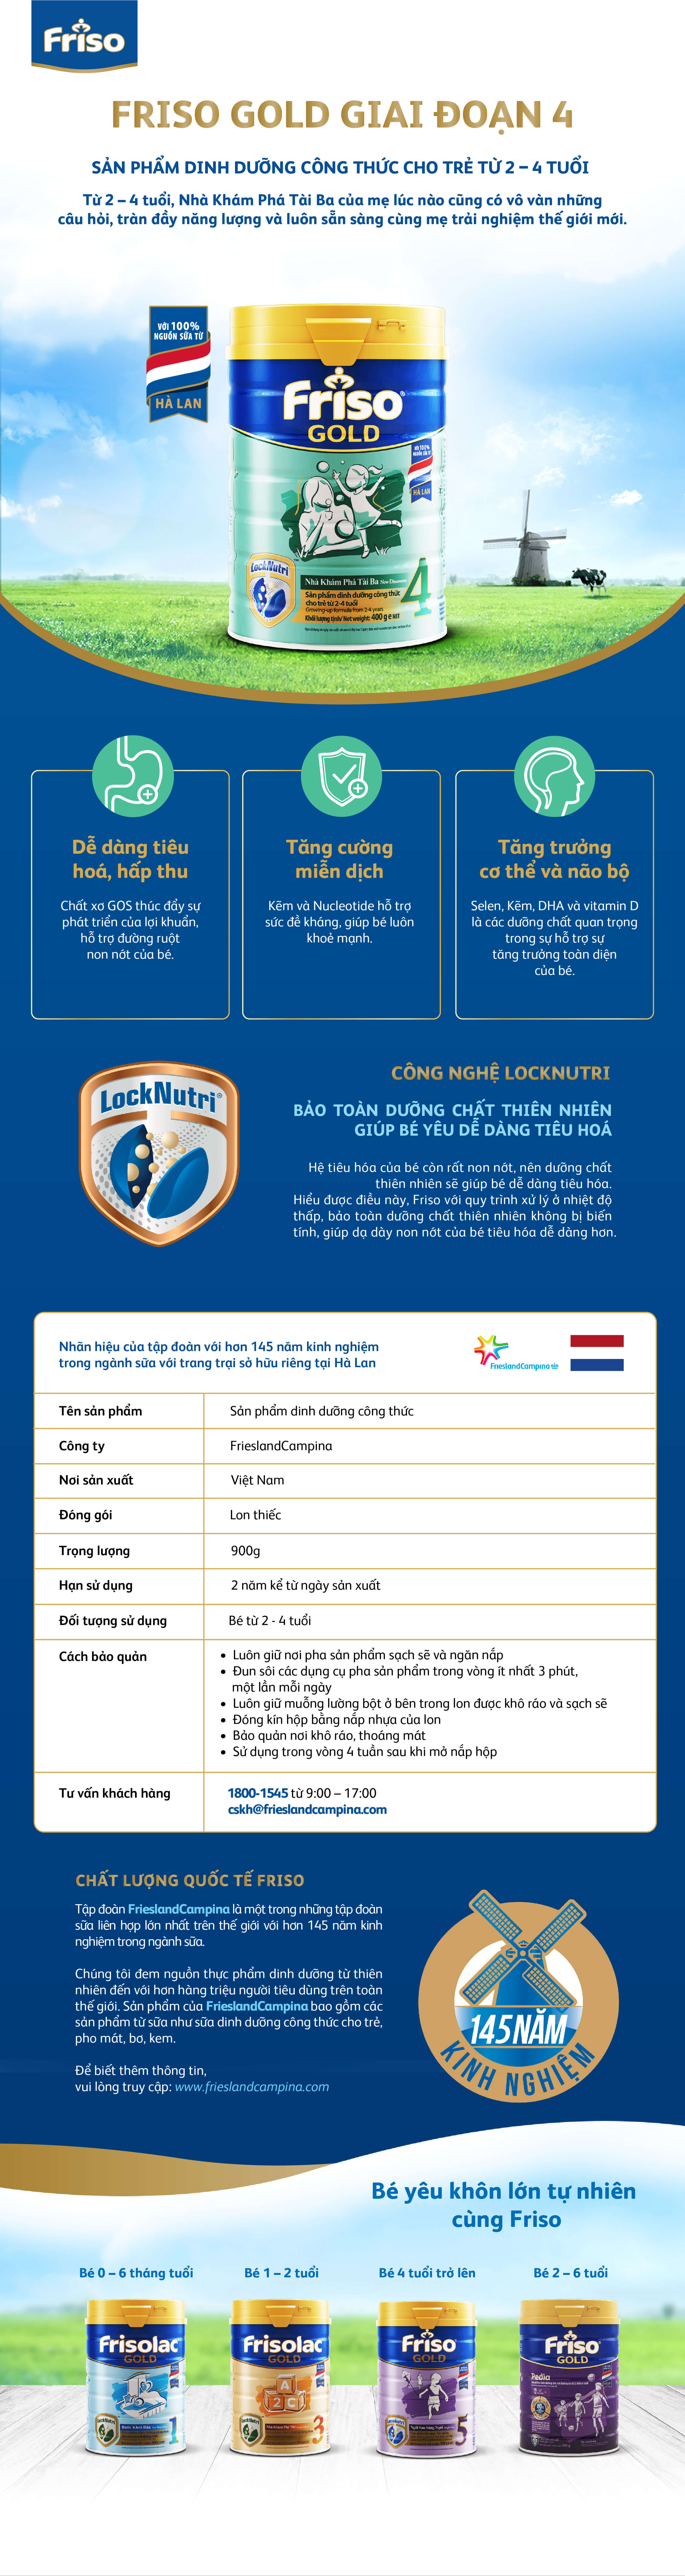 friso-master infographic-04